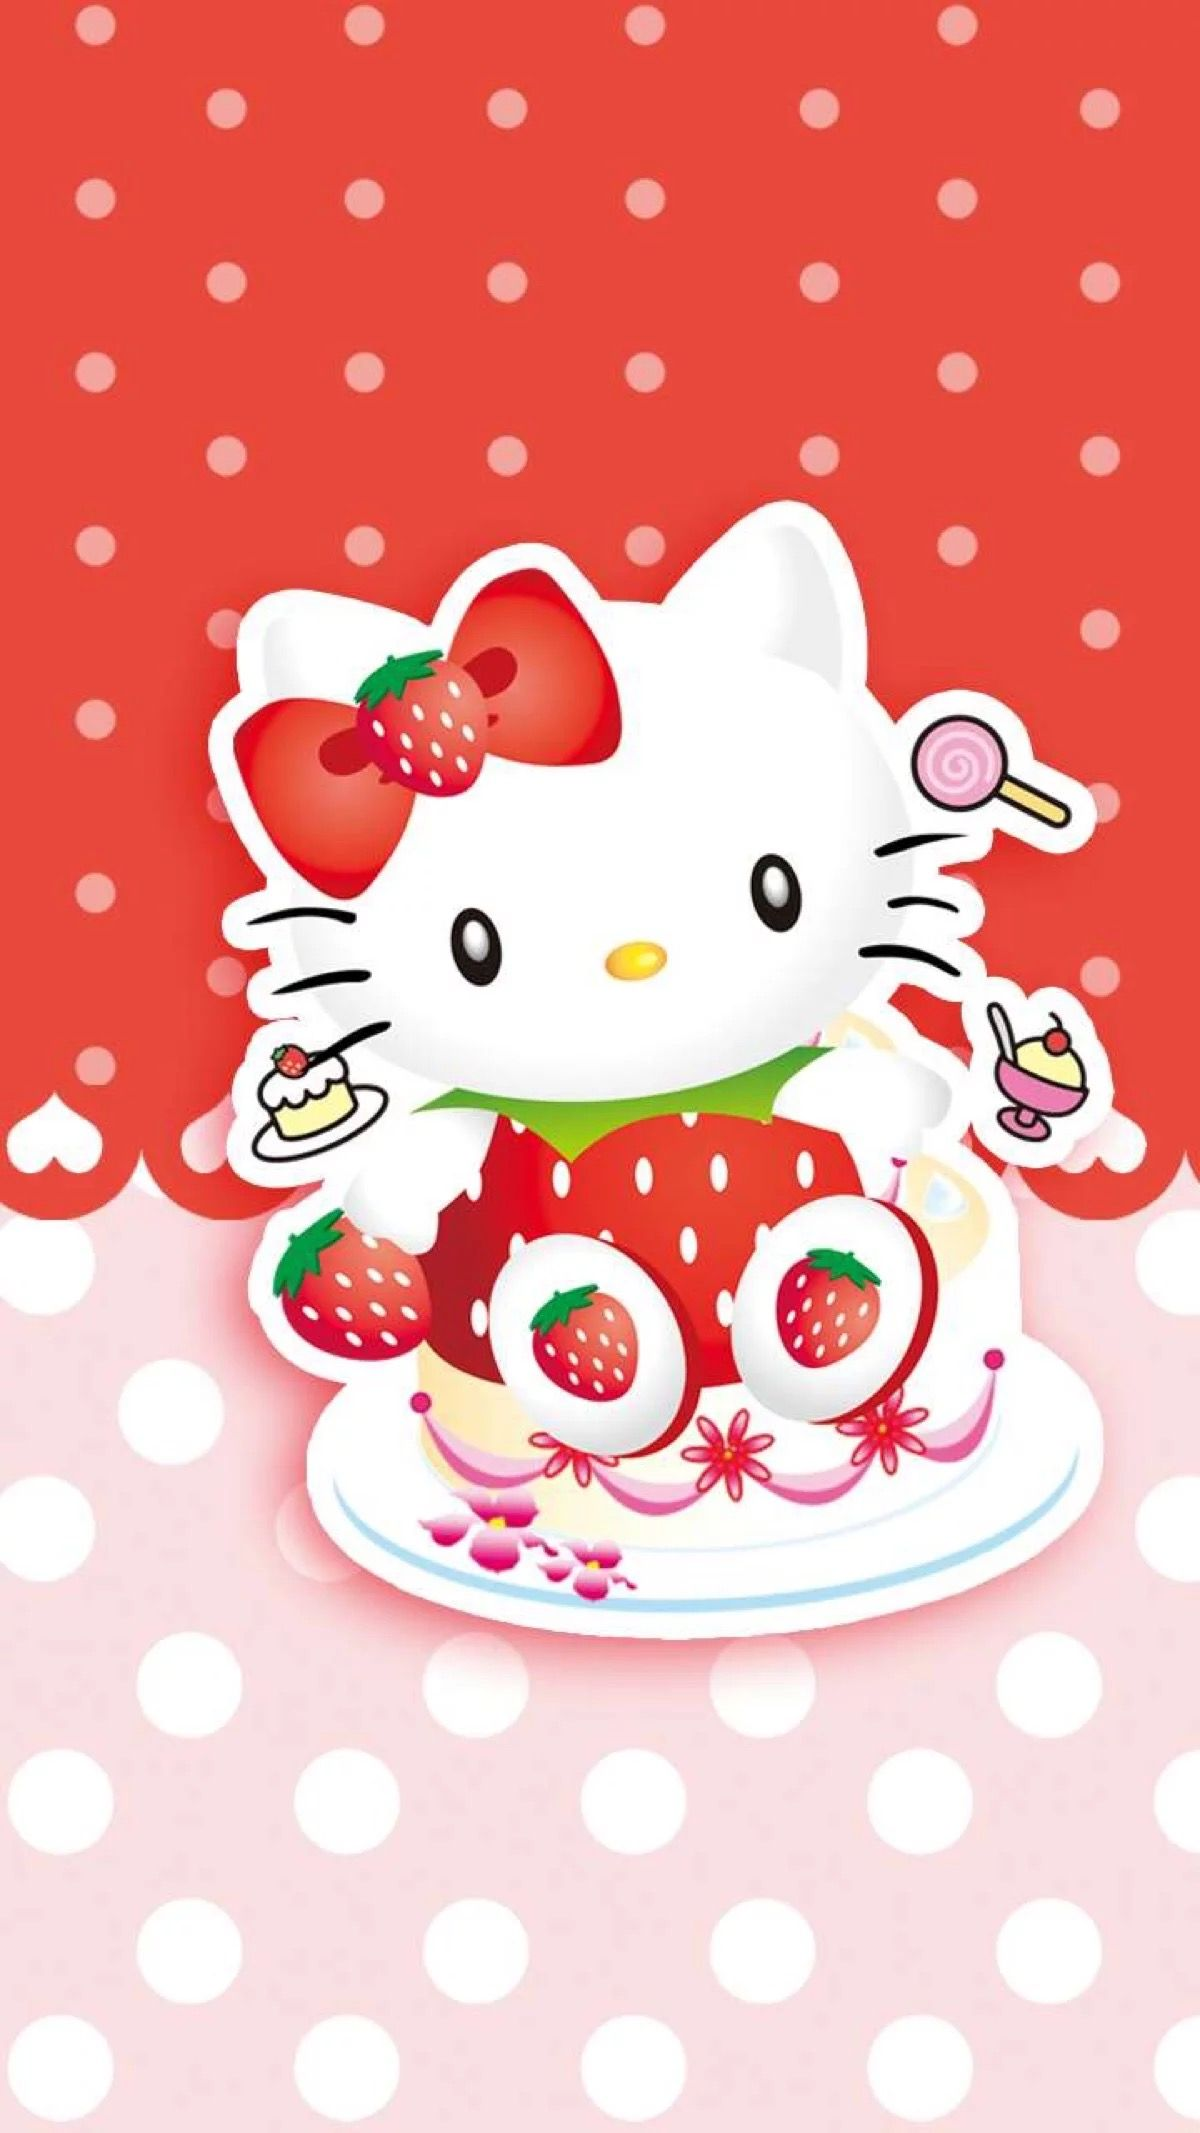 Best Wallpaper Hello Kitty Red - c56c73b4b3a80d7f29bbb39eaa39bf56  Trends_746181.jpg